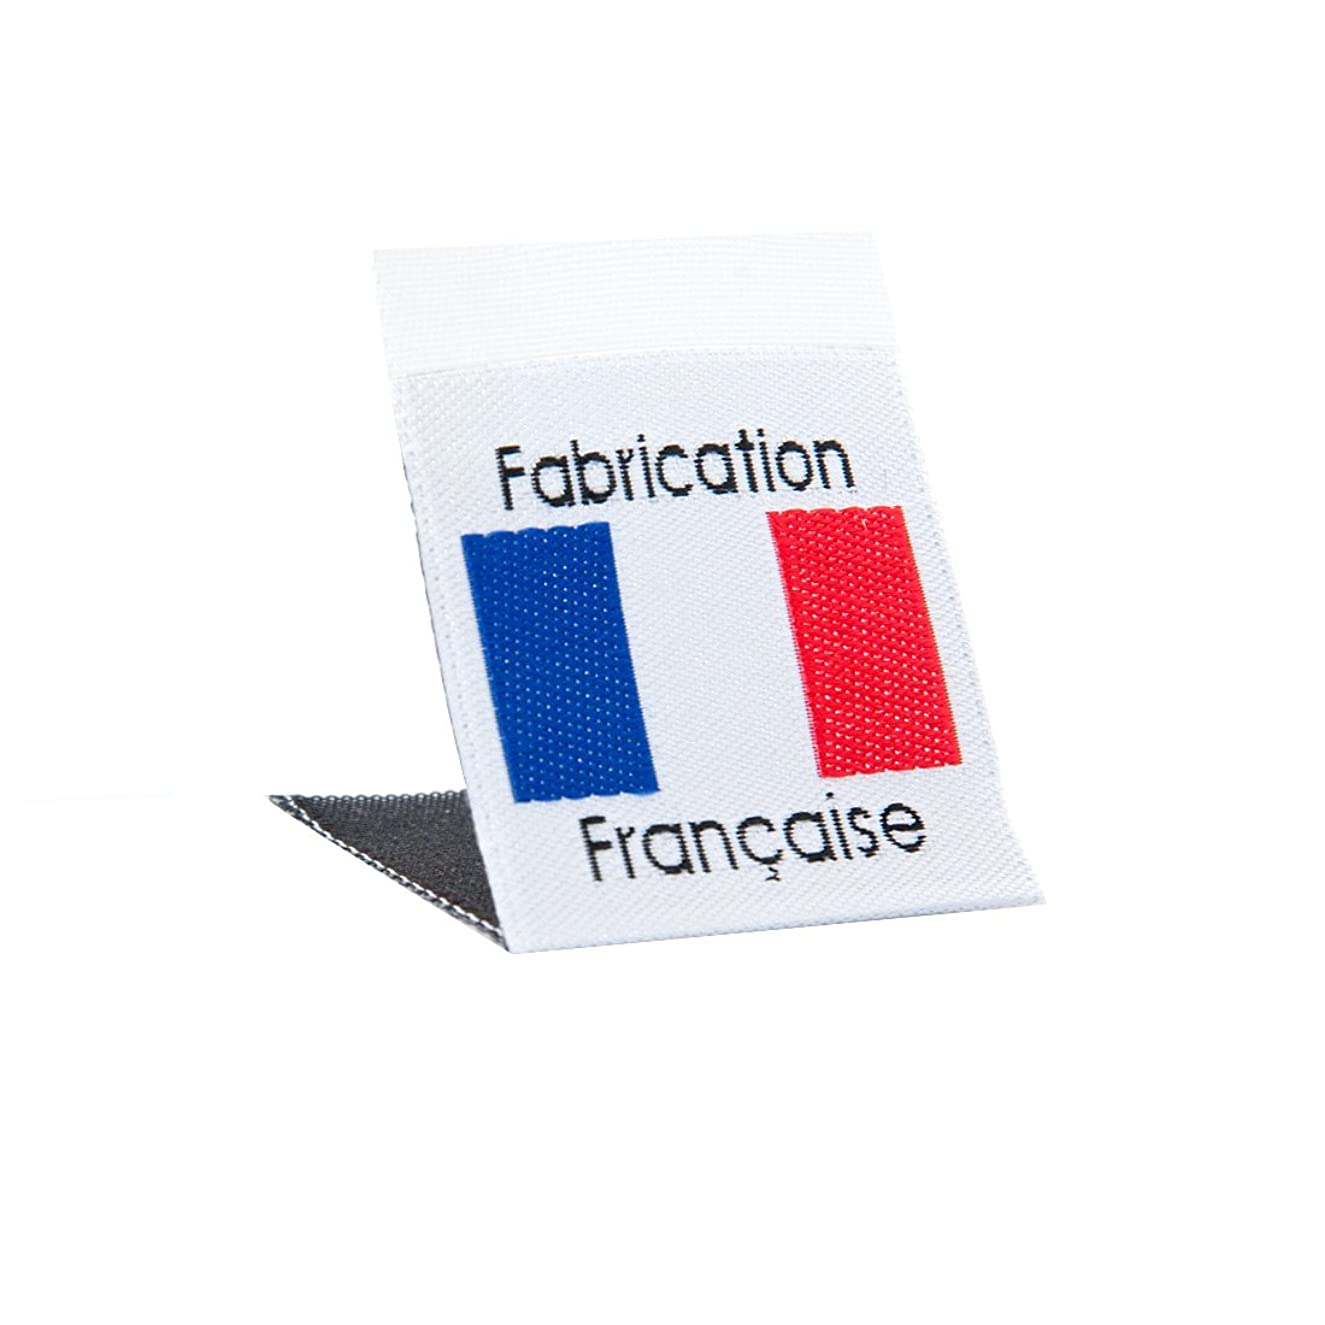 Wunderlabel France Flag Crafting Craft Art Fashion Woven Ribbon Ribbons Tag for Clothing Sewing Sew on Clothes Garment Fabric Material Embroidered Label Labels Tags Blue Red & Black on White 75 Labels